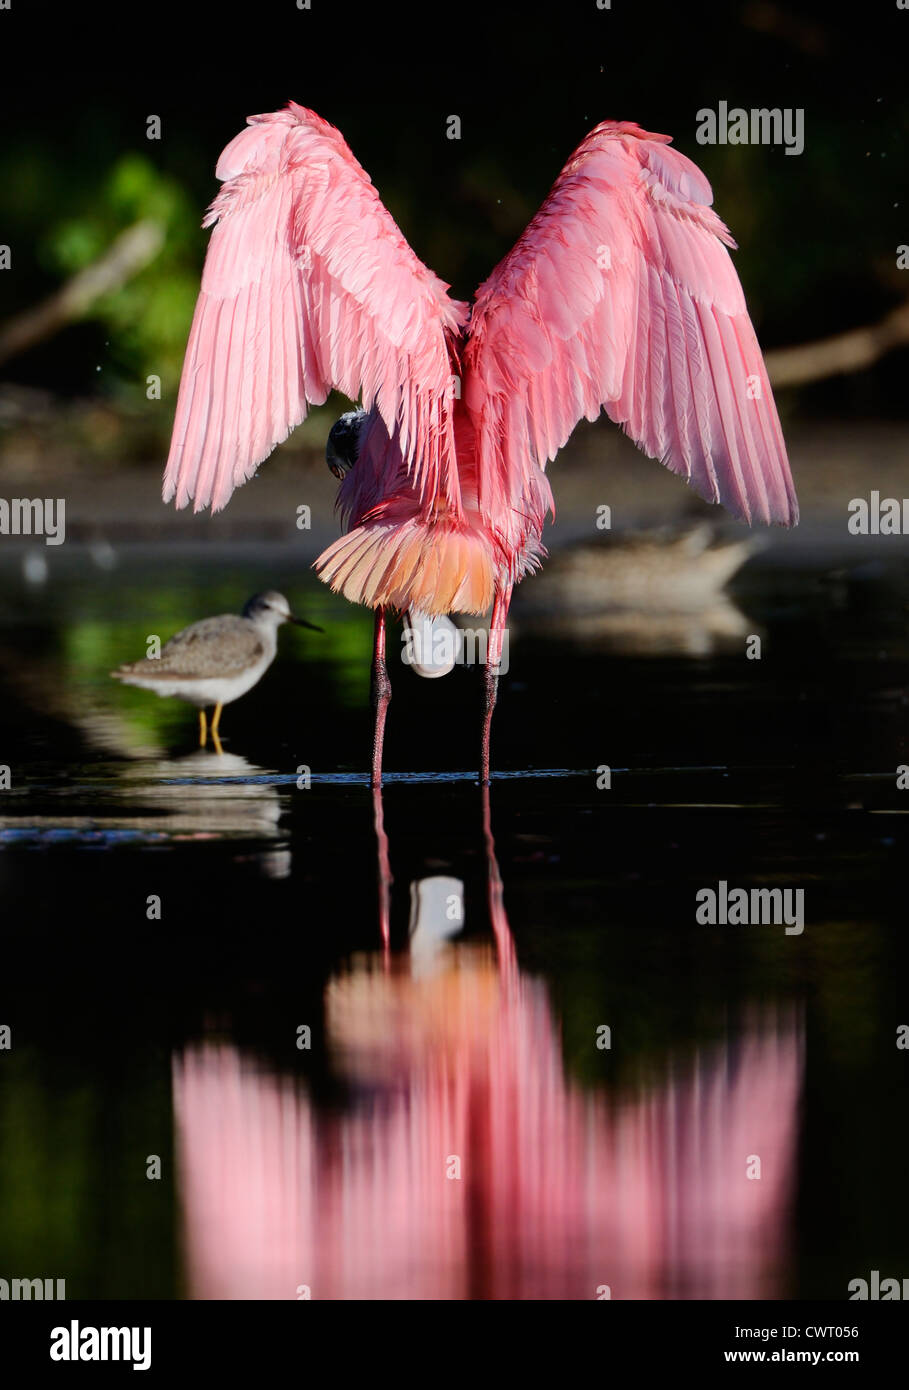 Roseate Spoonbill étend ses ailes Photo Stock